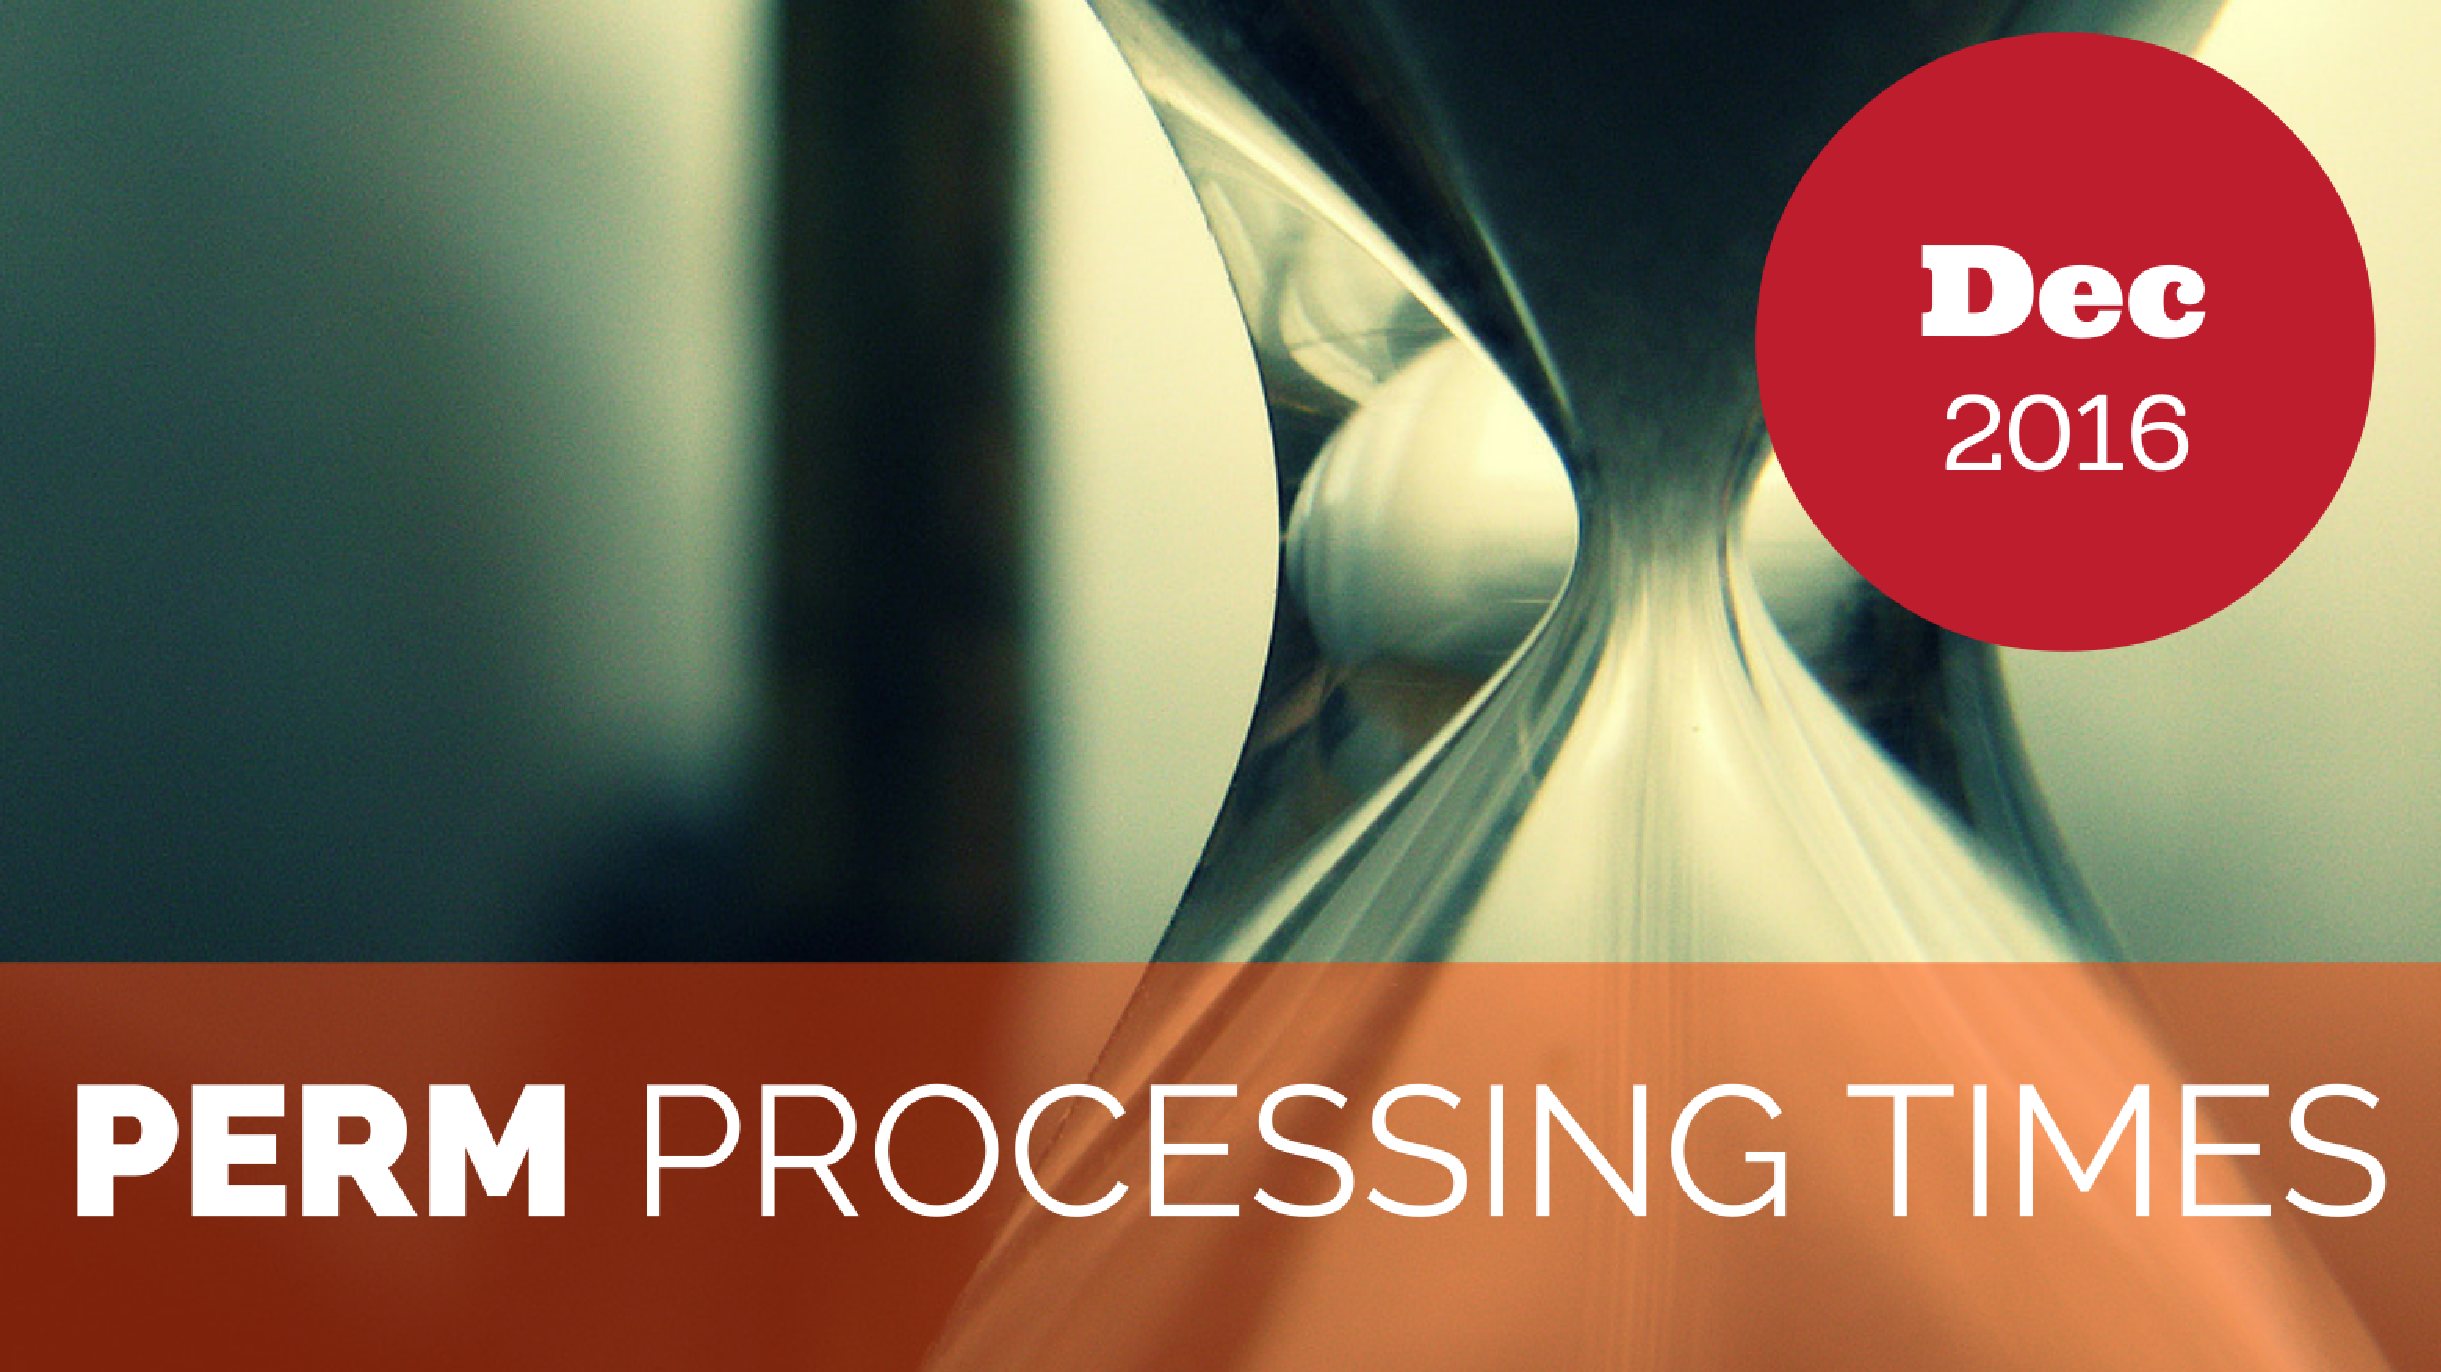 PERM Processing Times December 2016